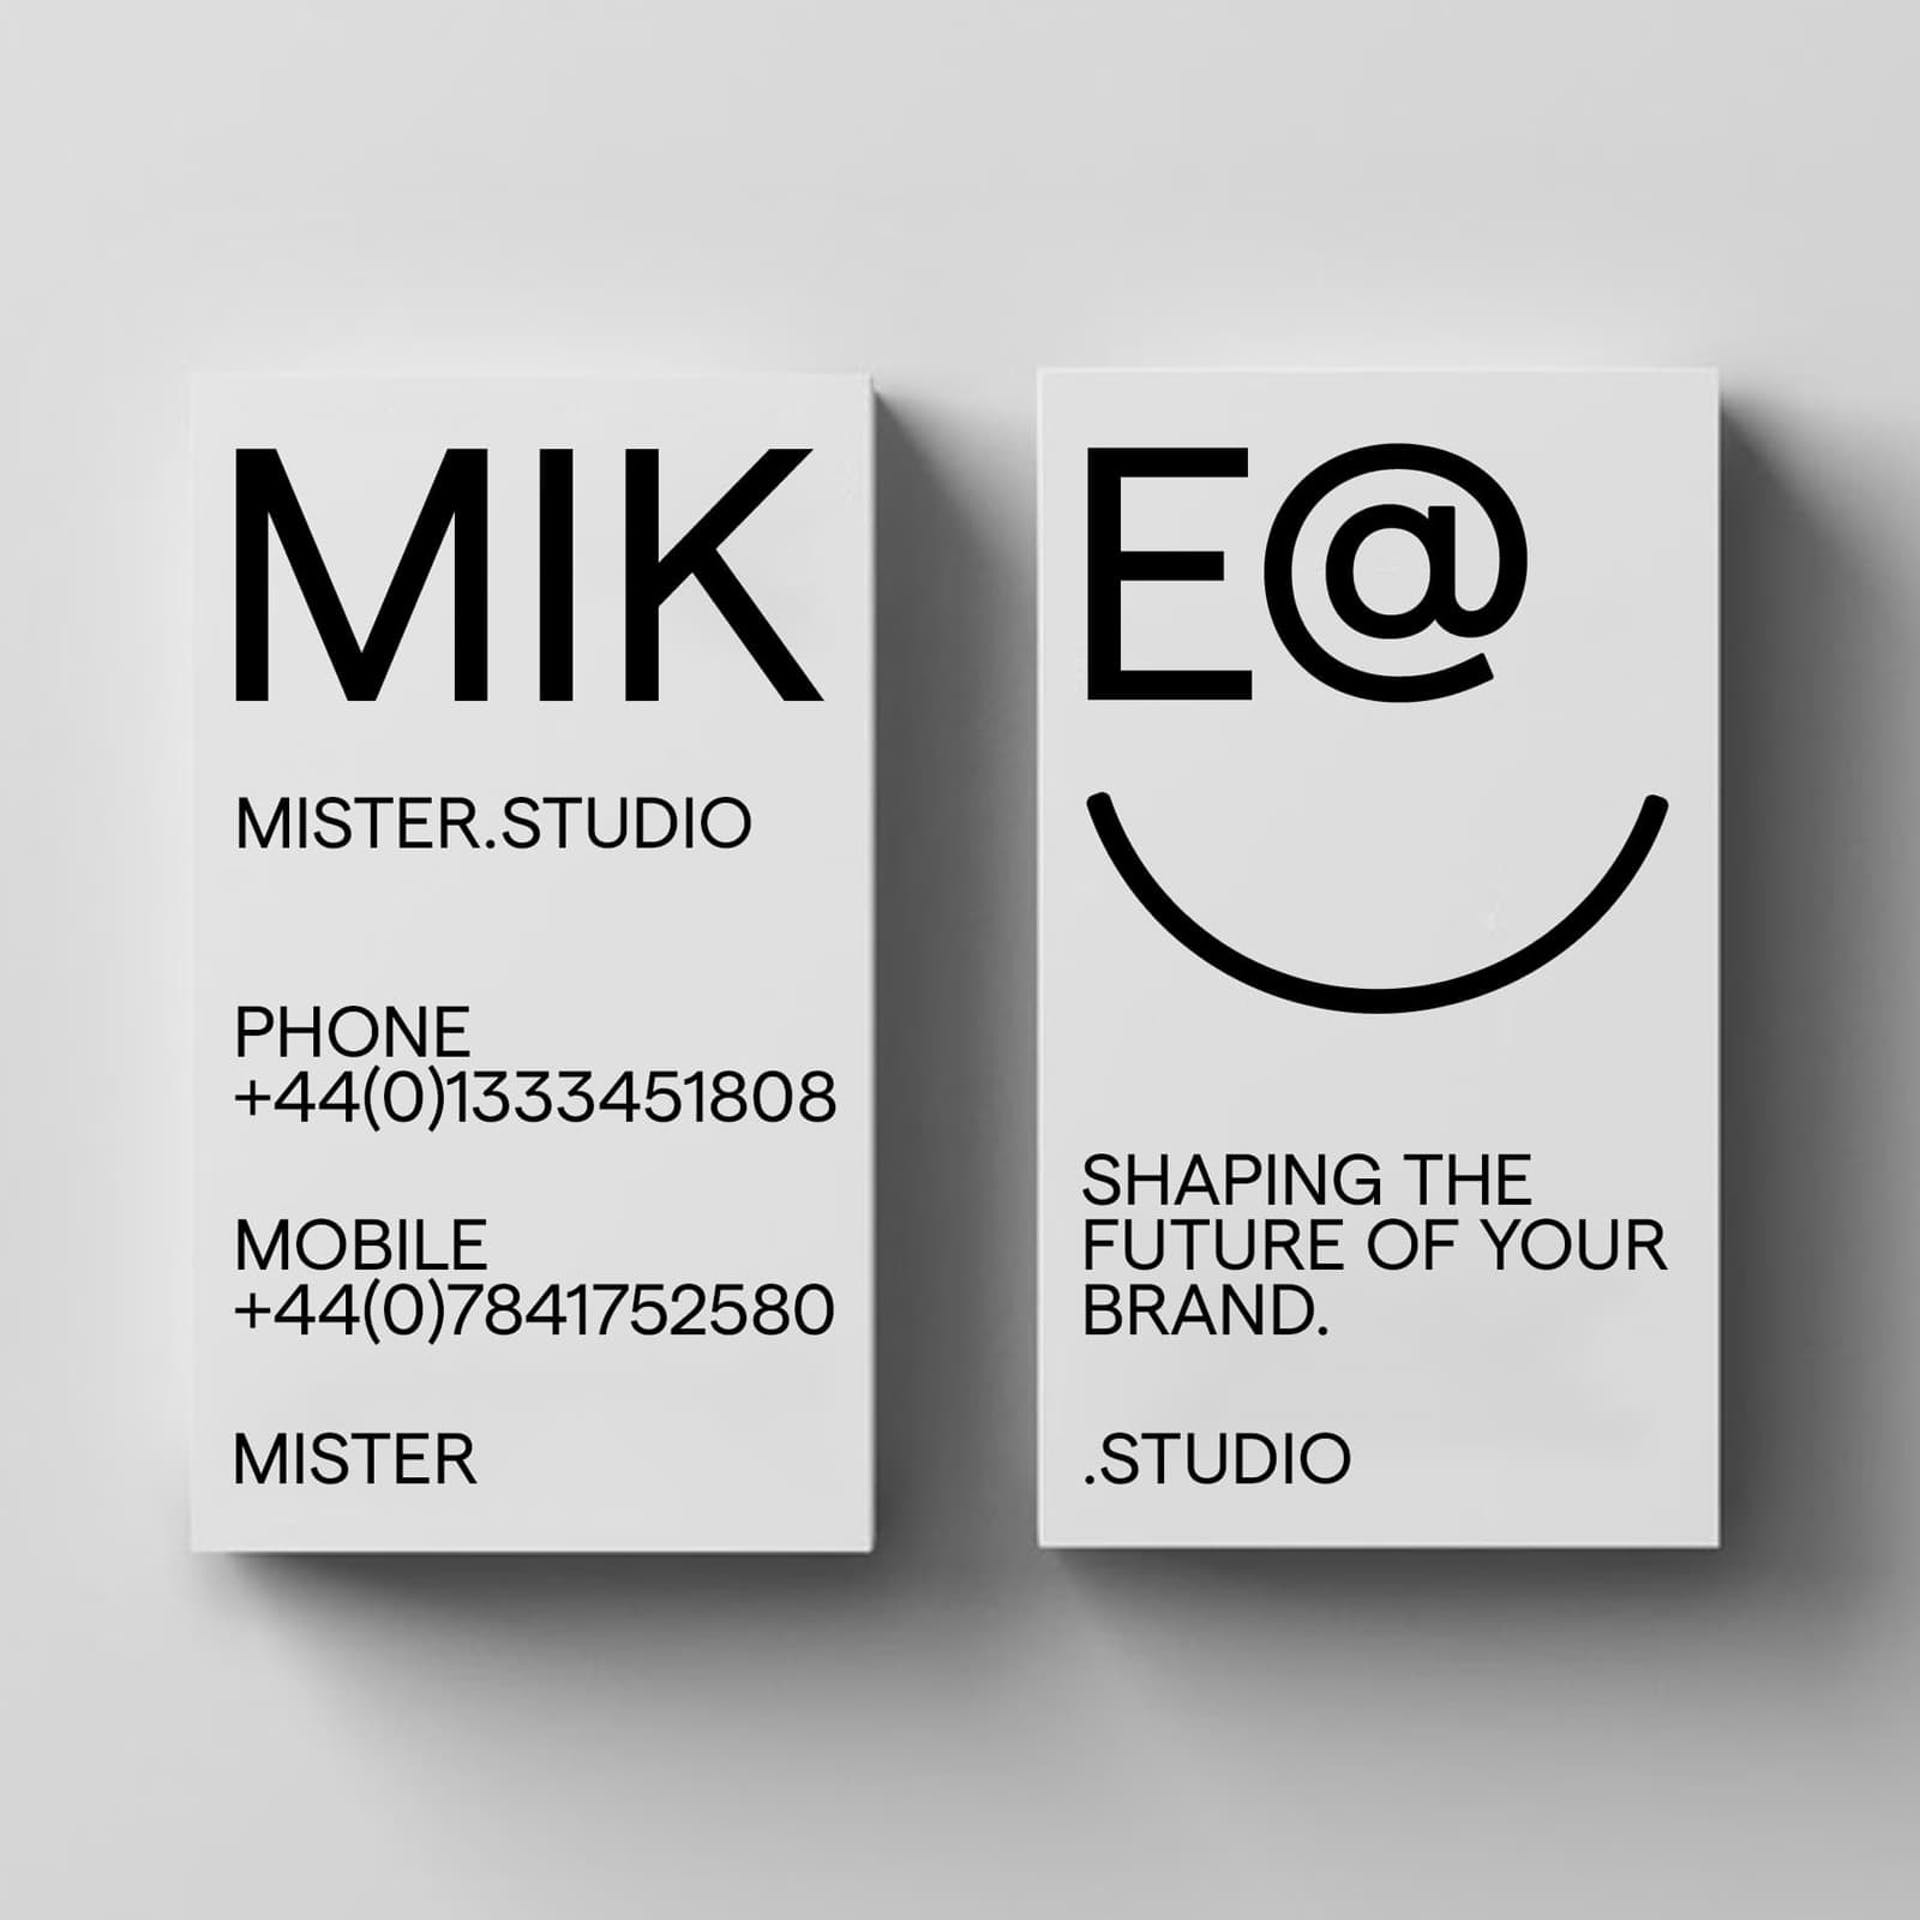 Project by Mister Studio